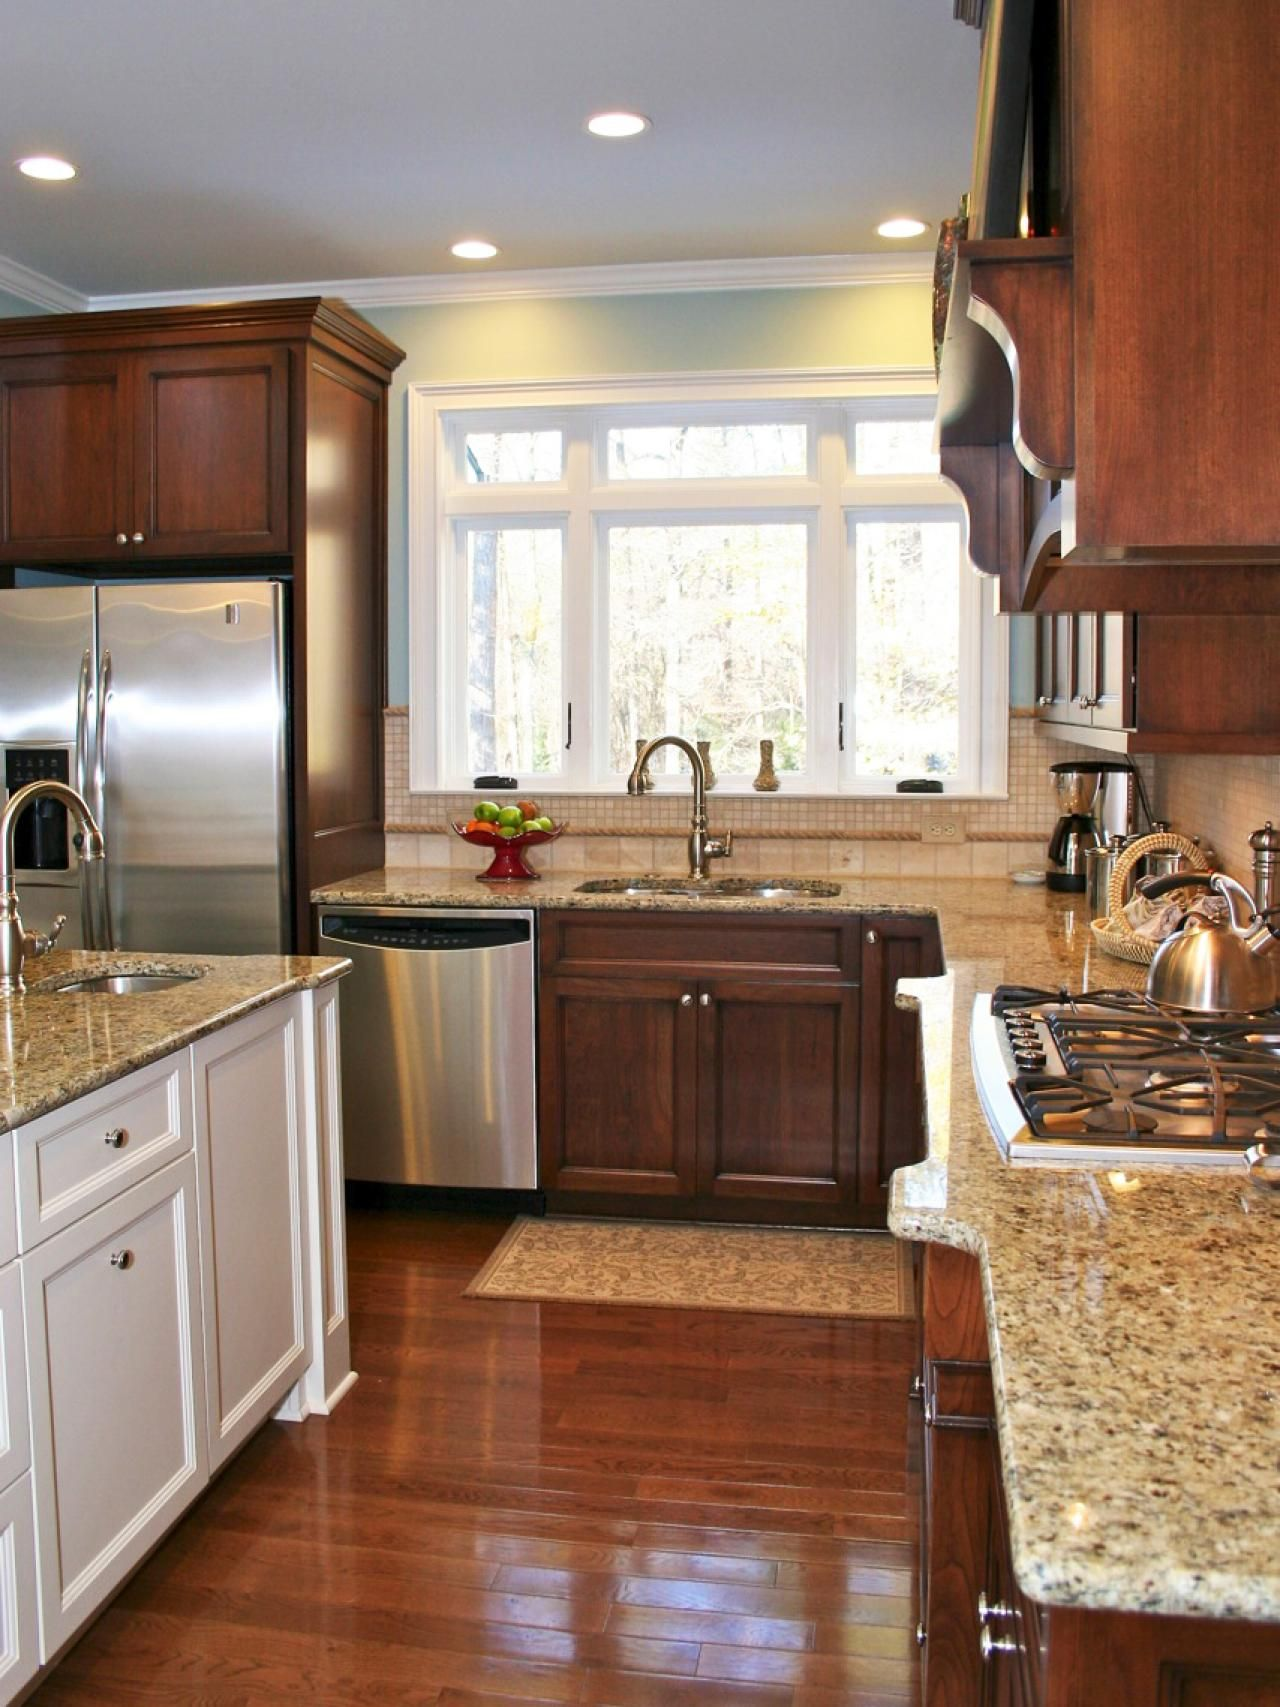 This Kitchens Granite Countertops Give The Traditional